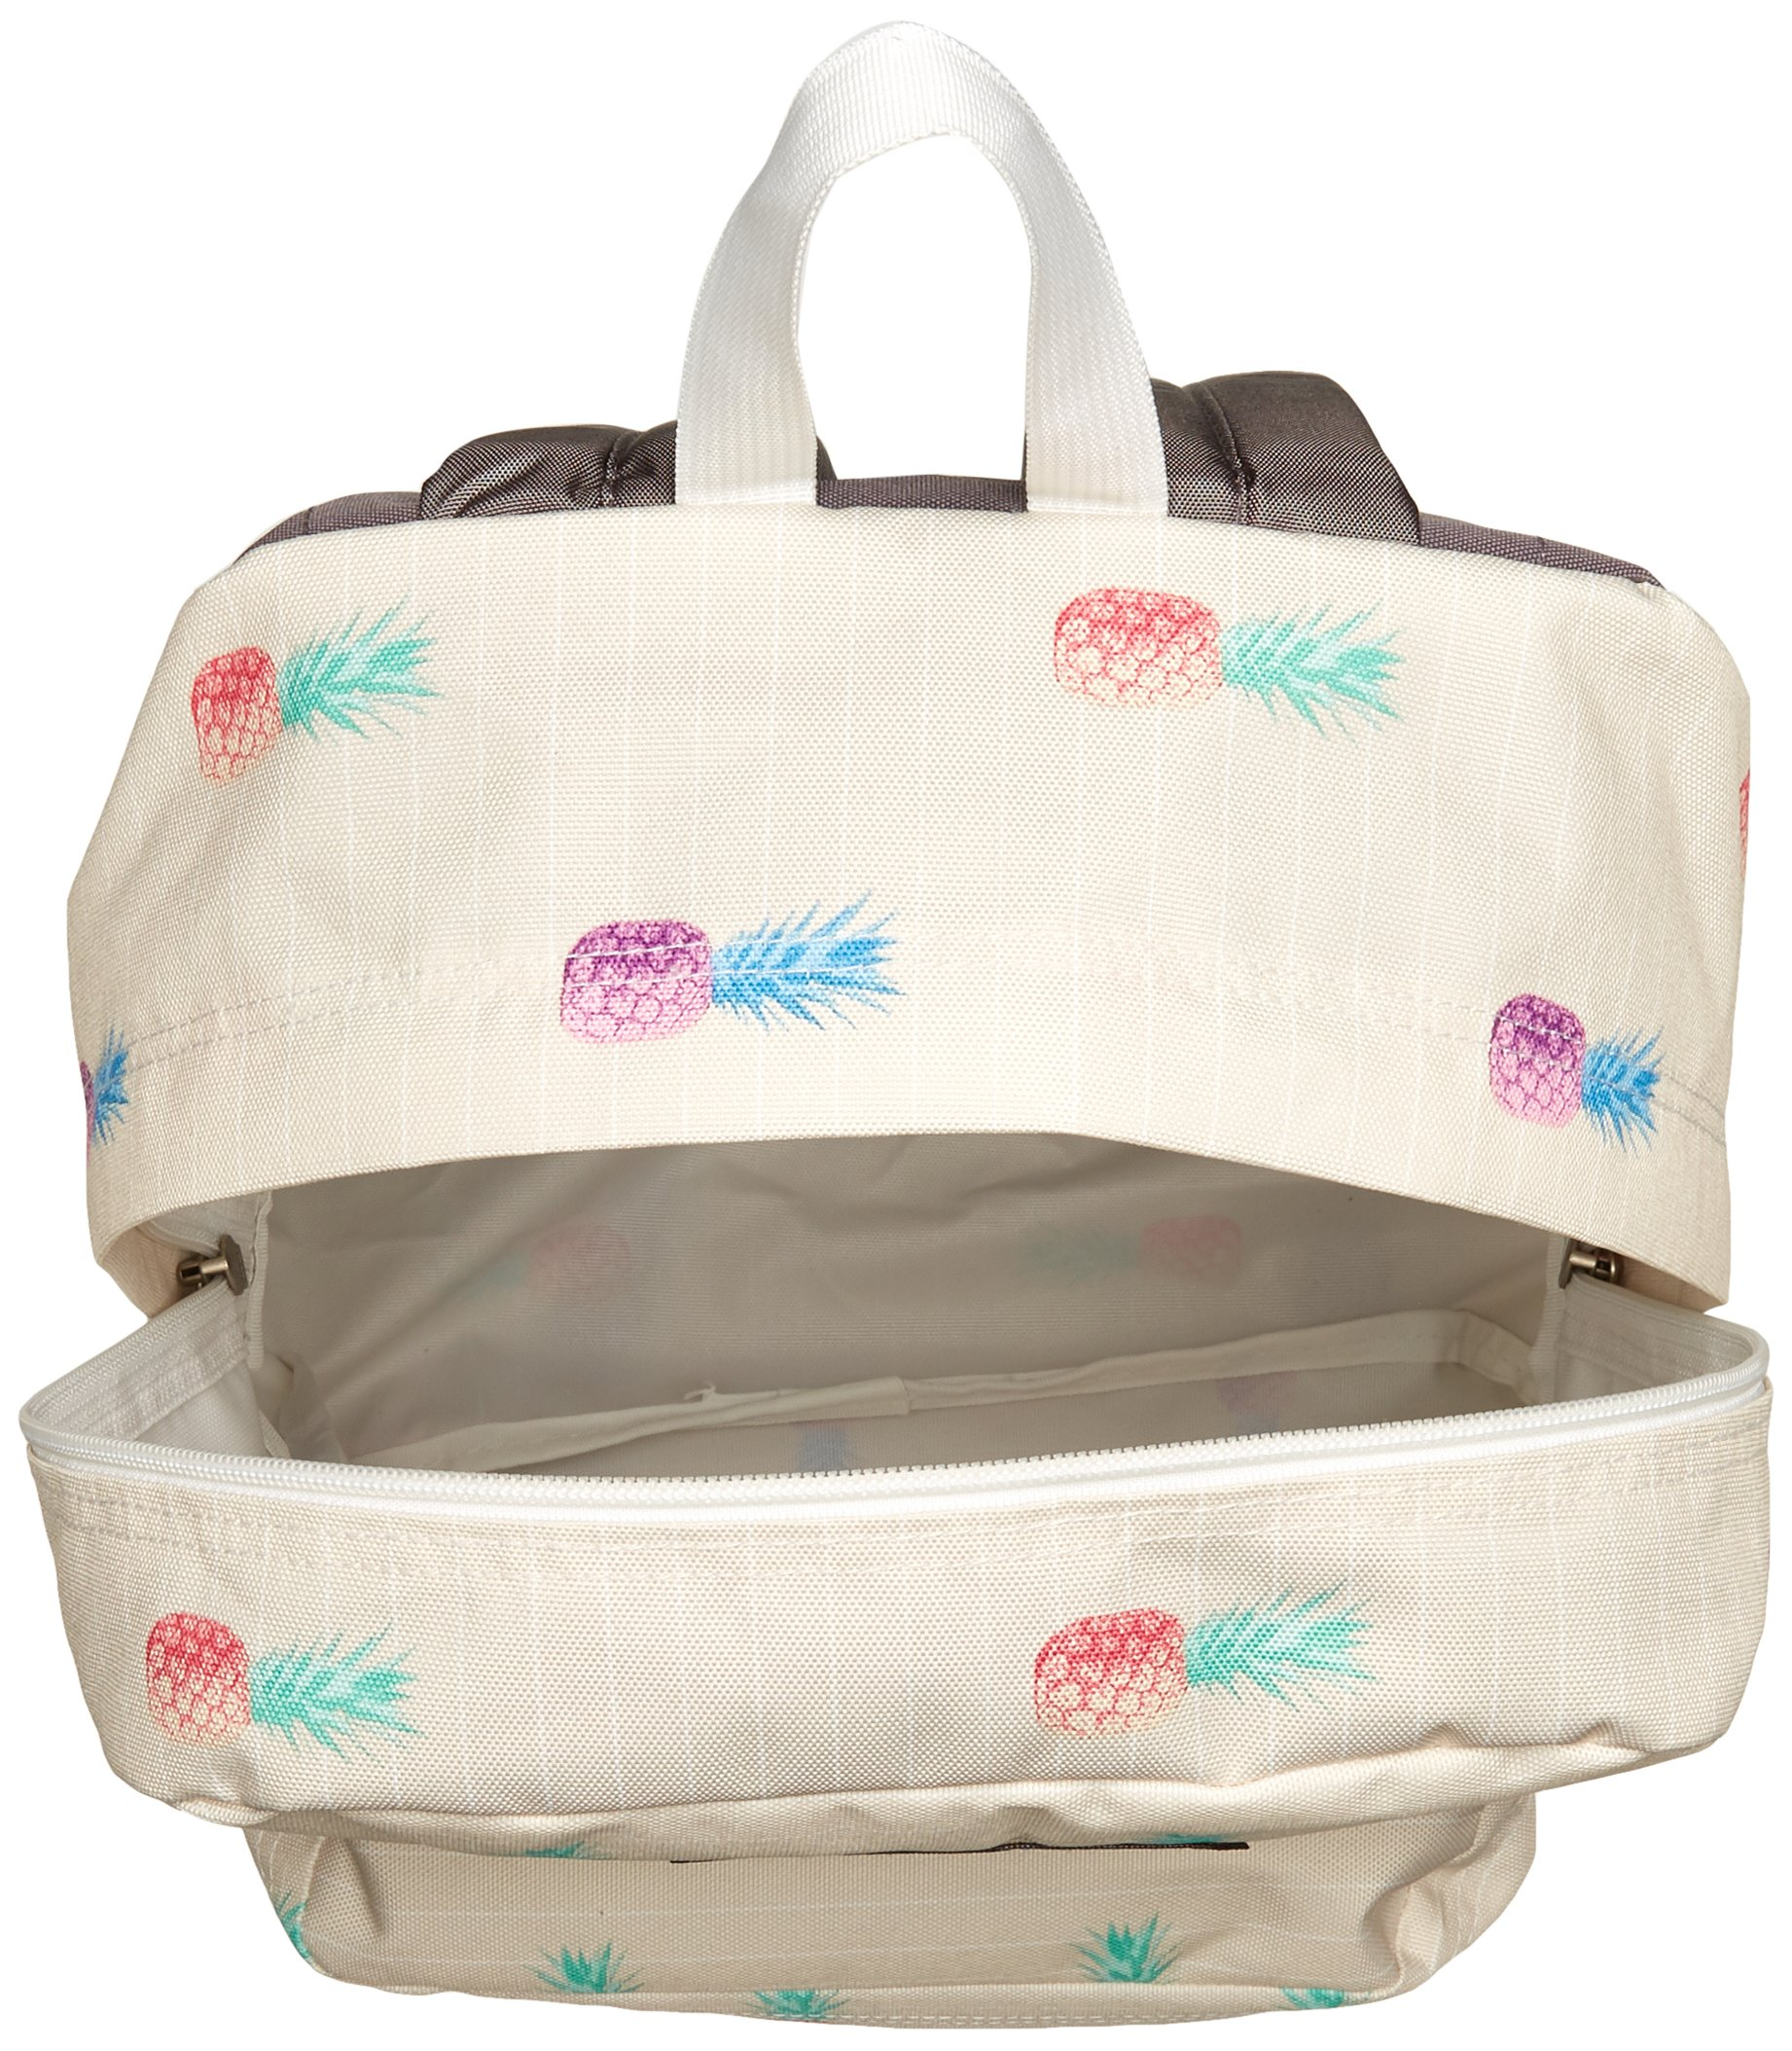 963723032 JanSport SuperBreak Backpack (Pineapple Punch) - JS00T50148L < Casual  Daypacks < Clothing, Shoes & Jewelry - tibs